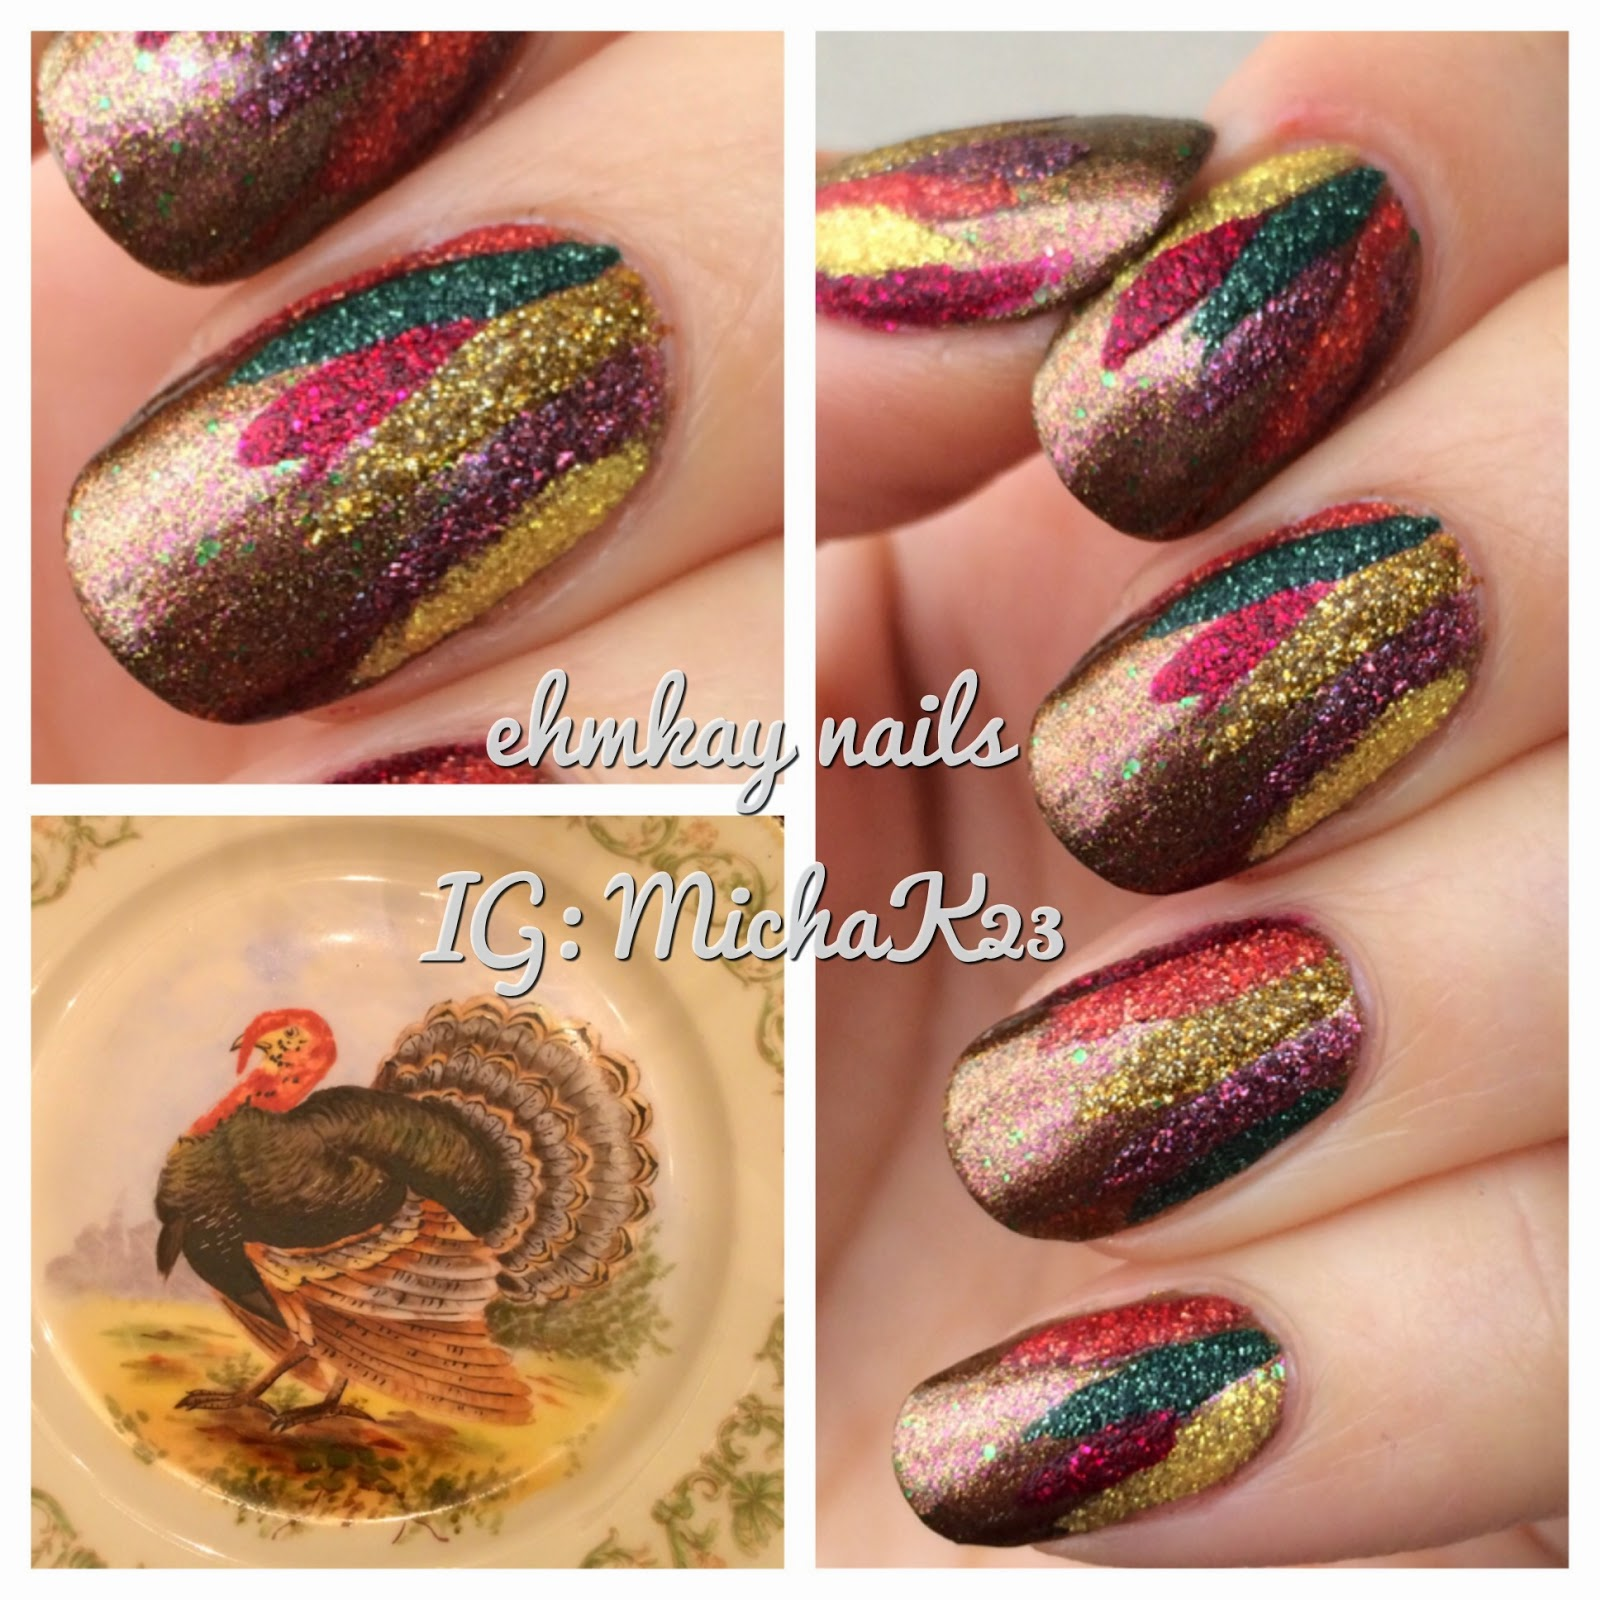 Ehmkay Nails Abstract Turkey Feathers Nail Art